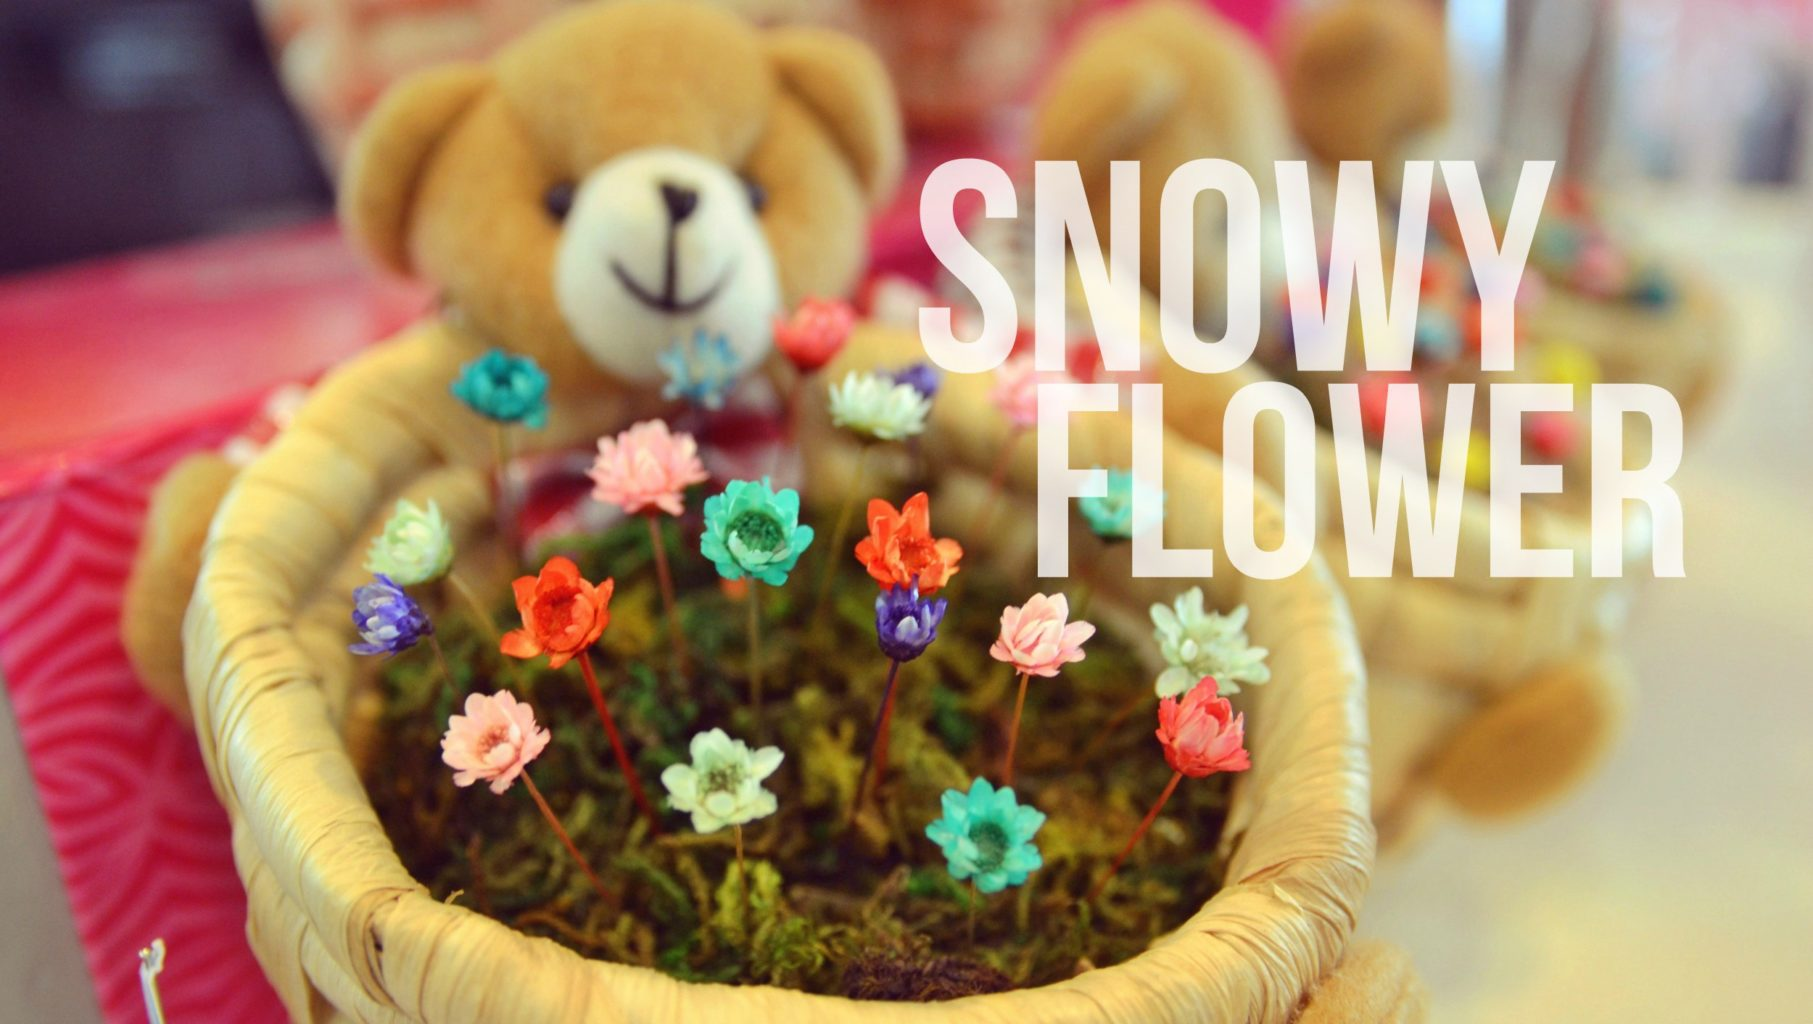 Snowy Flower : A Flower That Lasts for 10 Years | Cream of the Craft